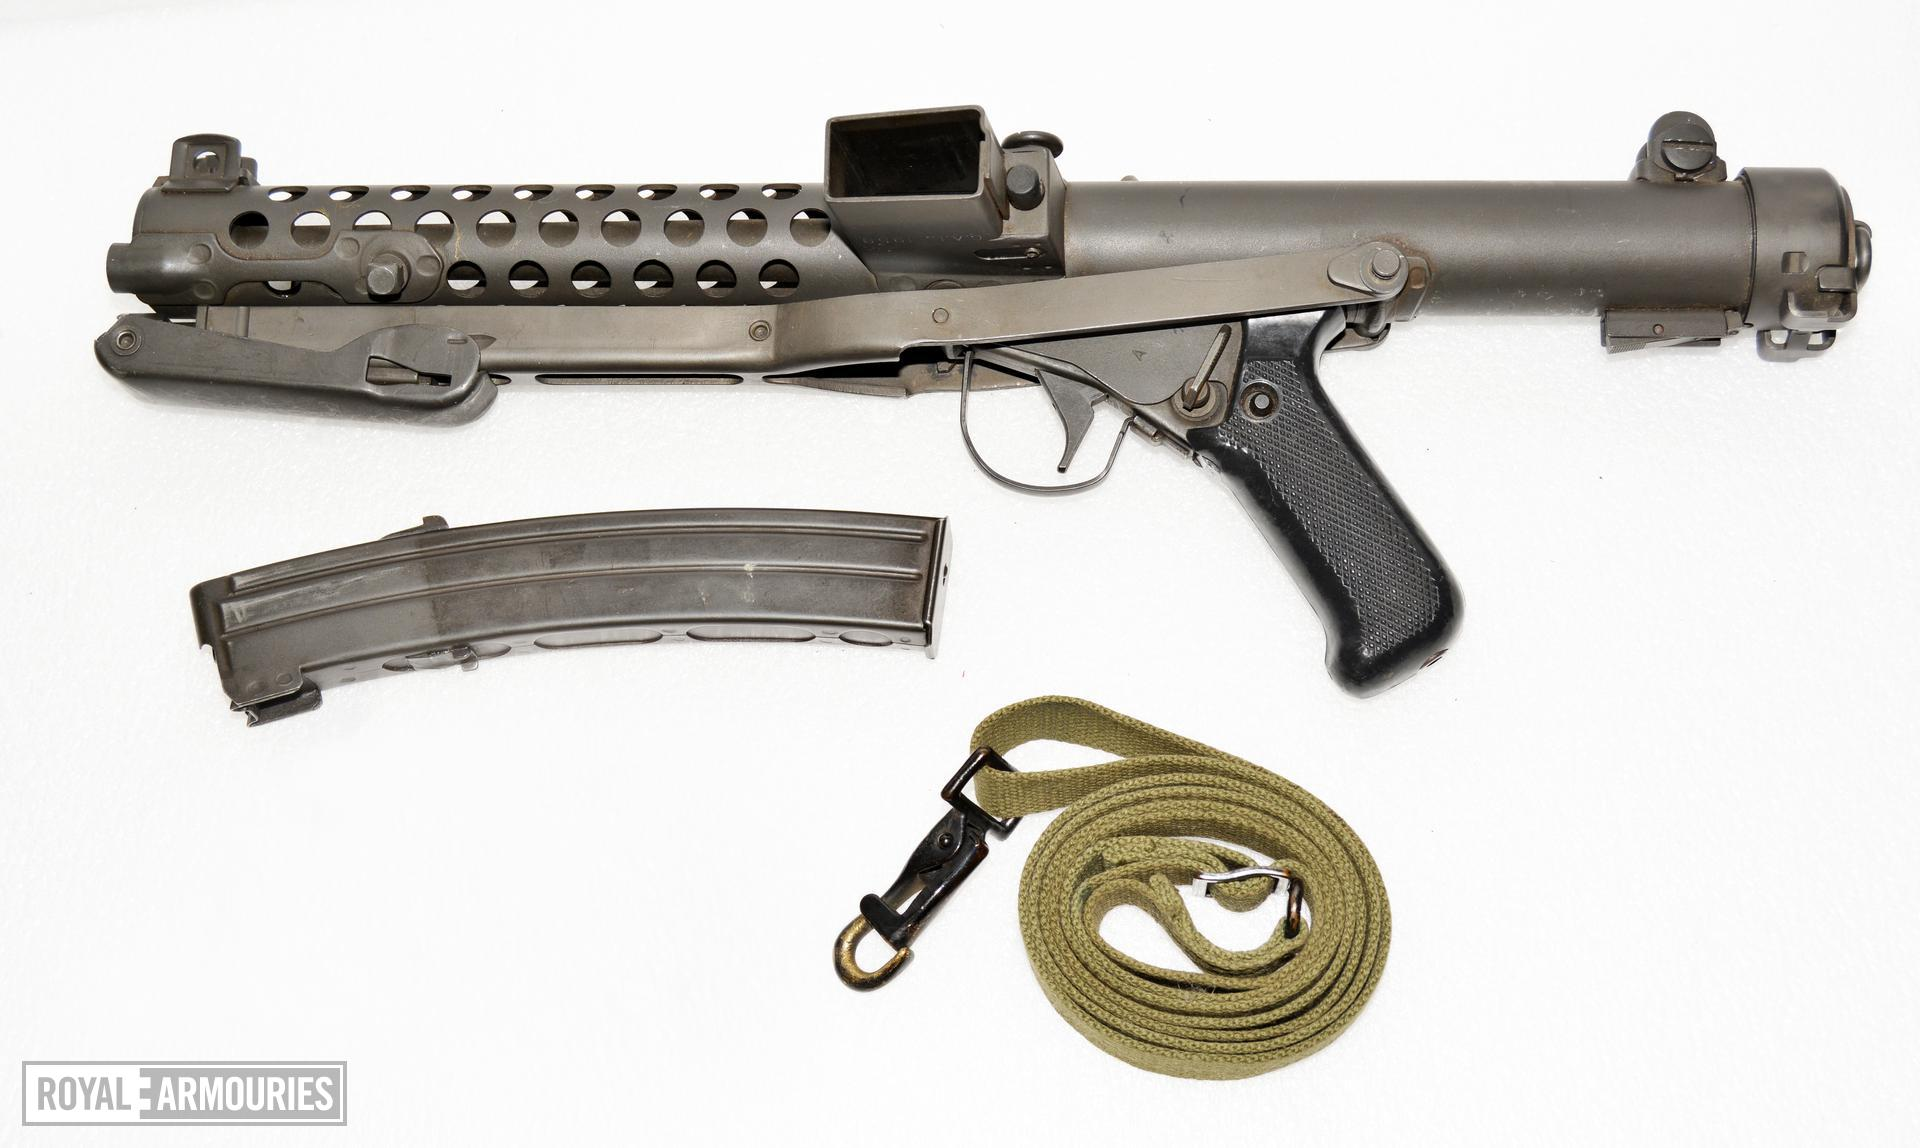 Canadian SMG 9 mm C1 with stock in folded position. Shown with issue magazine and sling. PR.7598